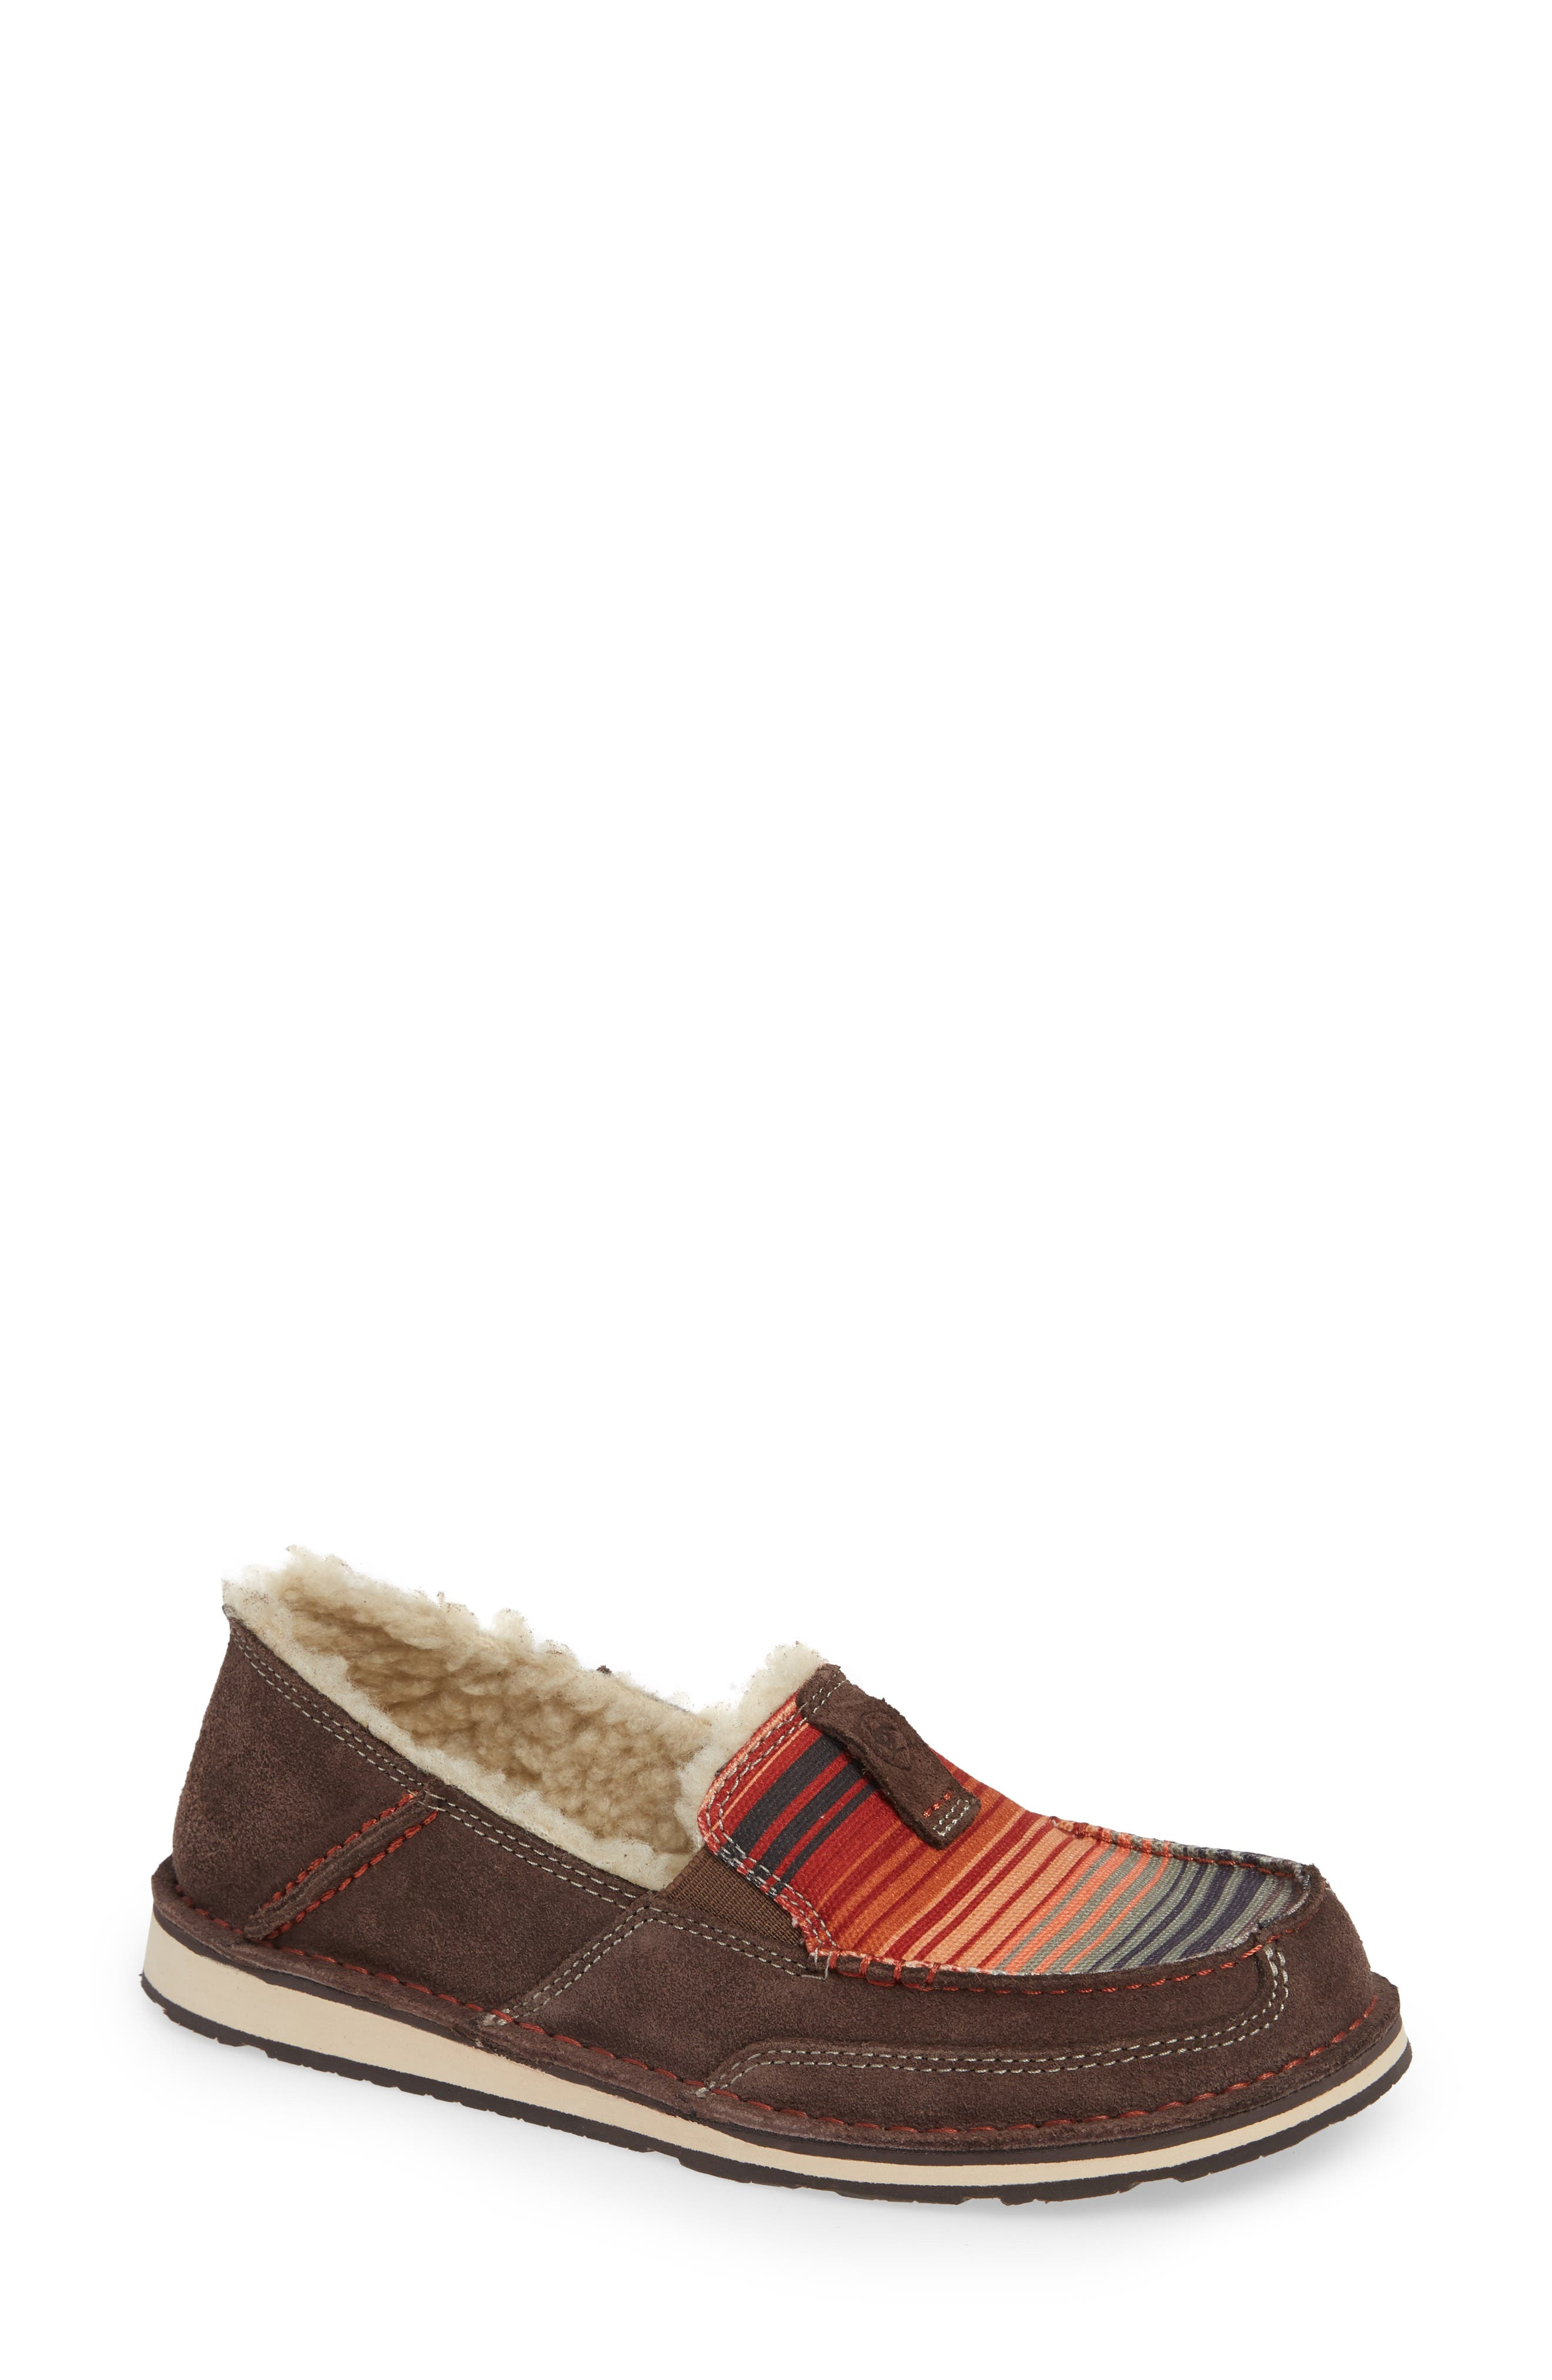 ARIAT,                             Cruiser Slip-On Loafer,                             Main thumbnail 1, color,                             SOUTHWESTERN FABRIC